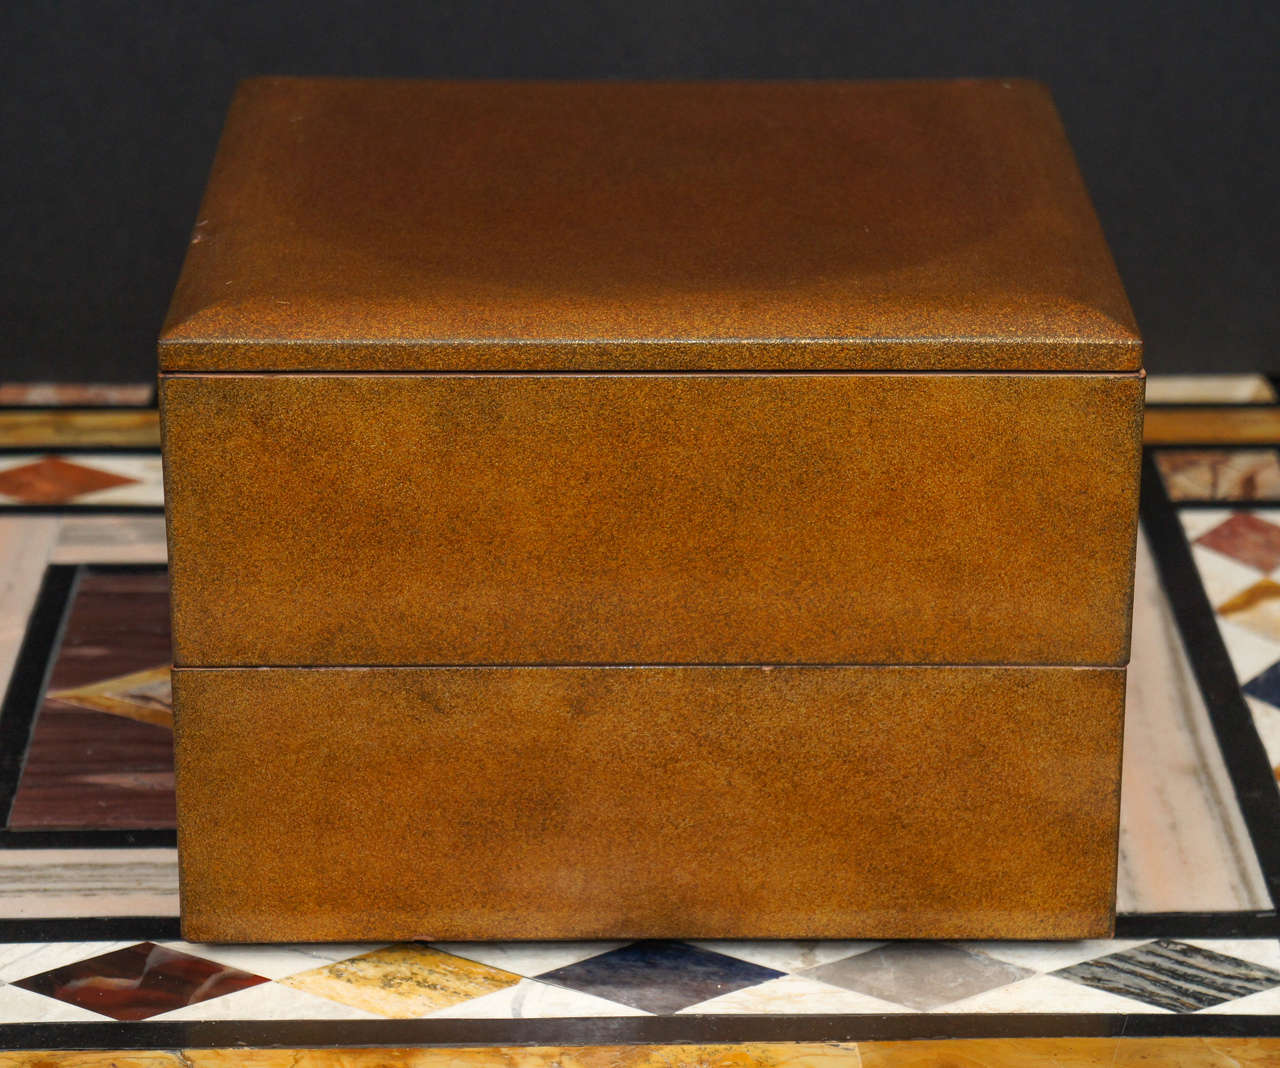 This very beautifully lacquered box is from the Meiji period in Japan. Made between 1864 and the end of the 19th century this small two tied box would have been a luxury item for storage or personal effects. Crafted with an all-over exterior gold